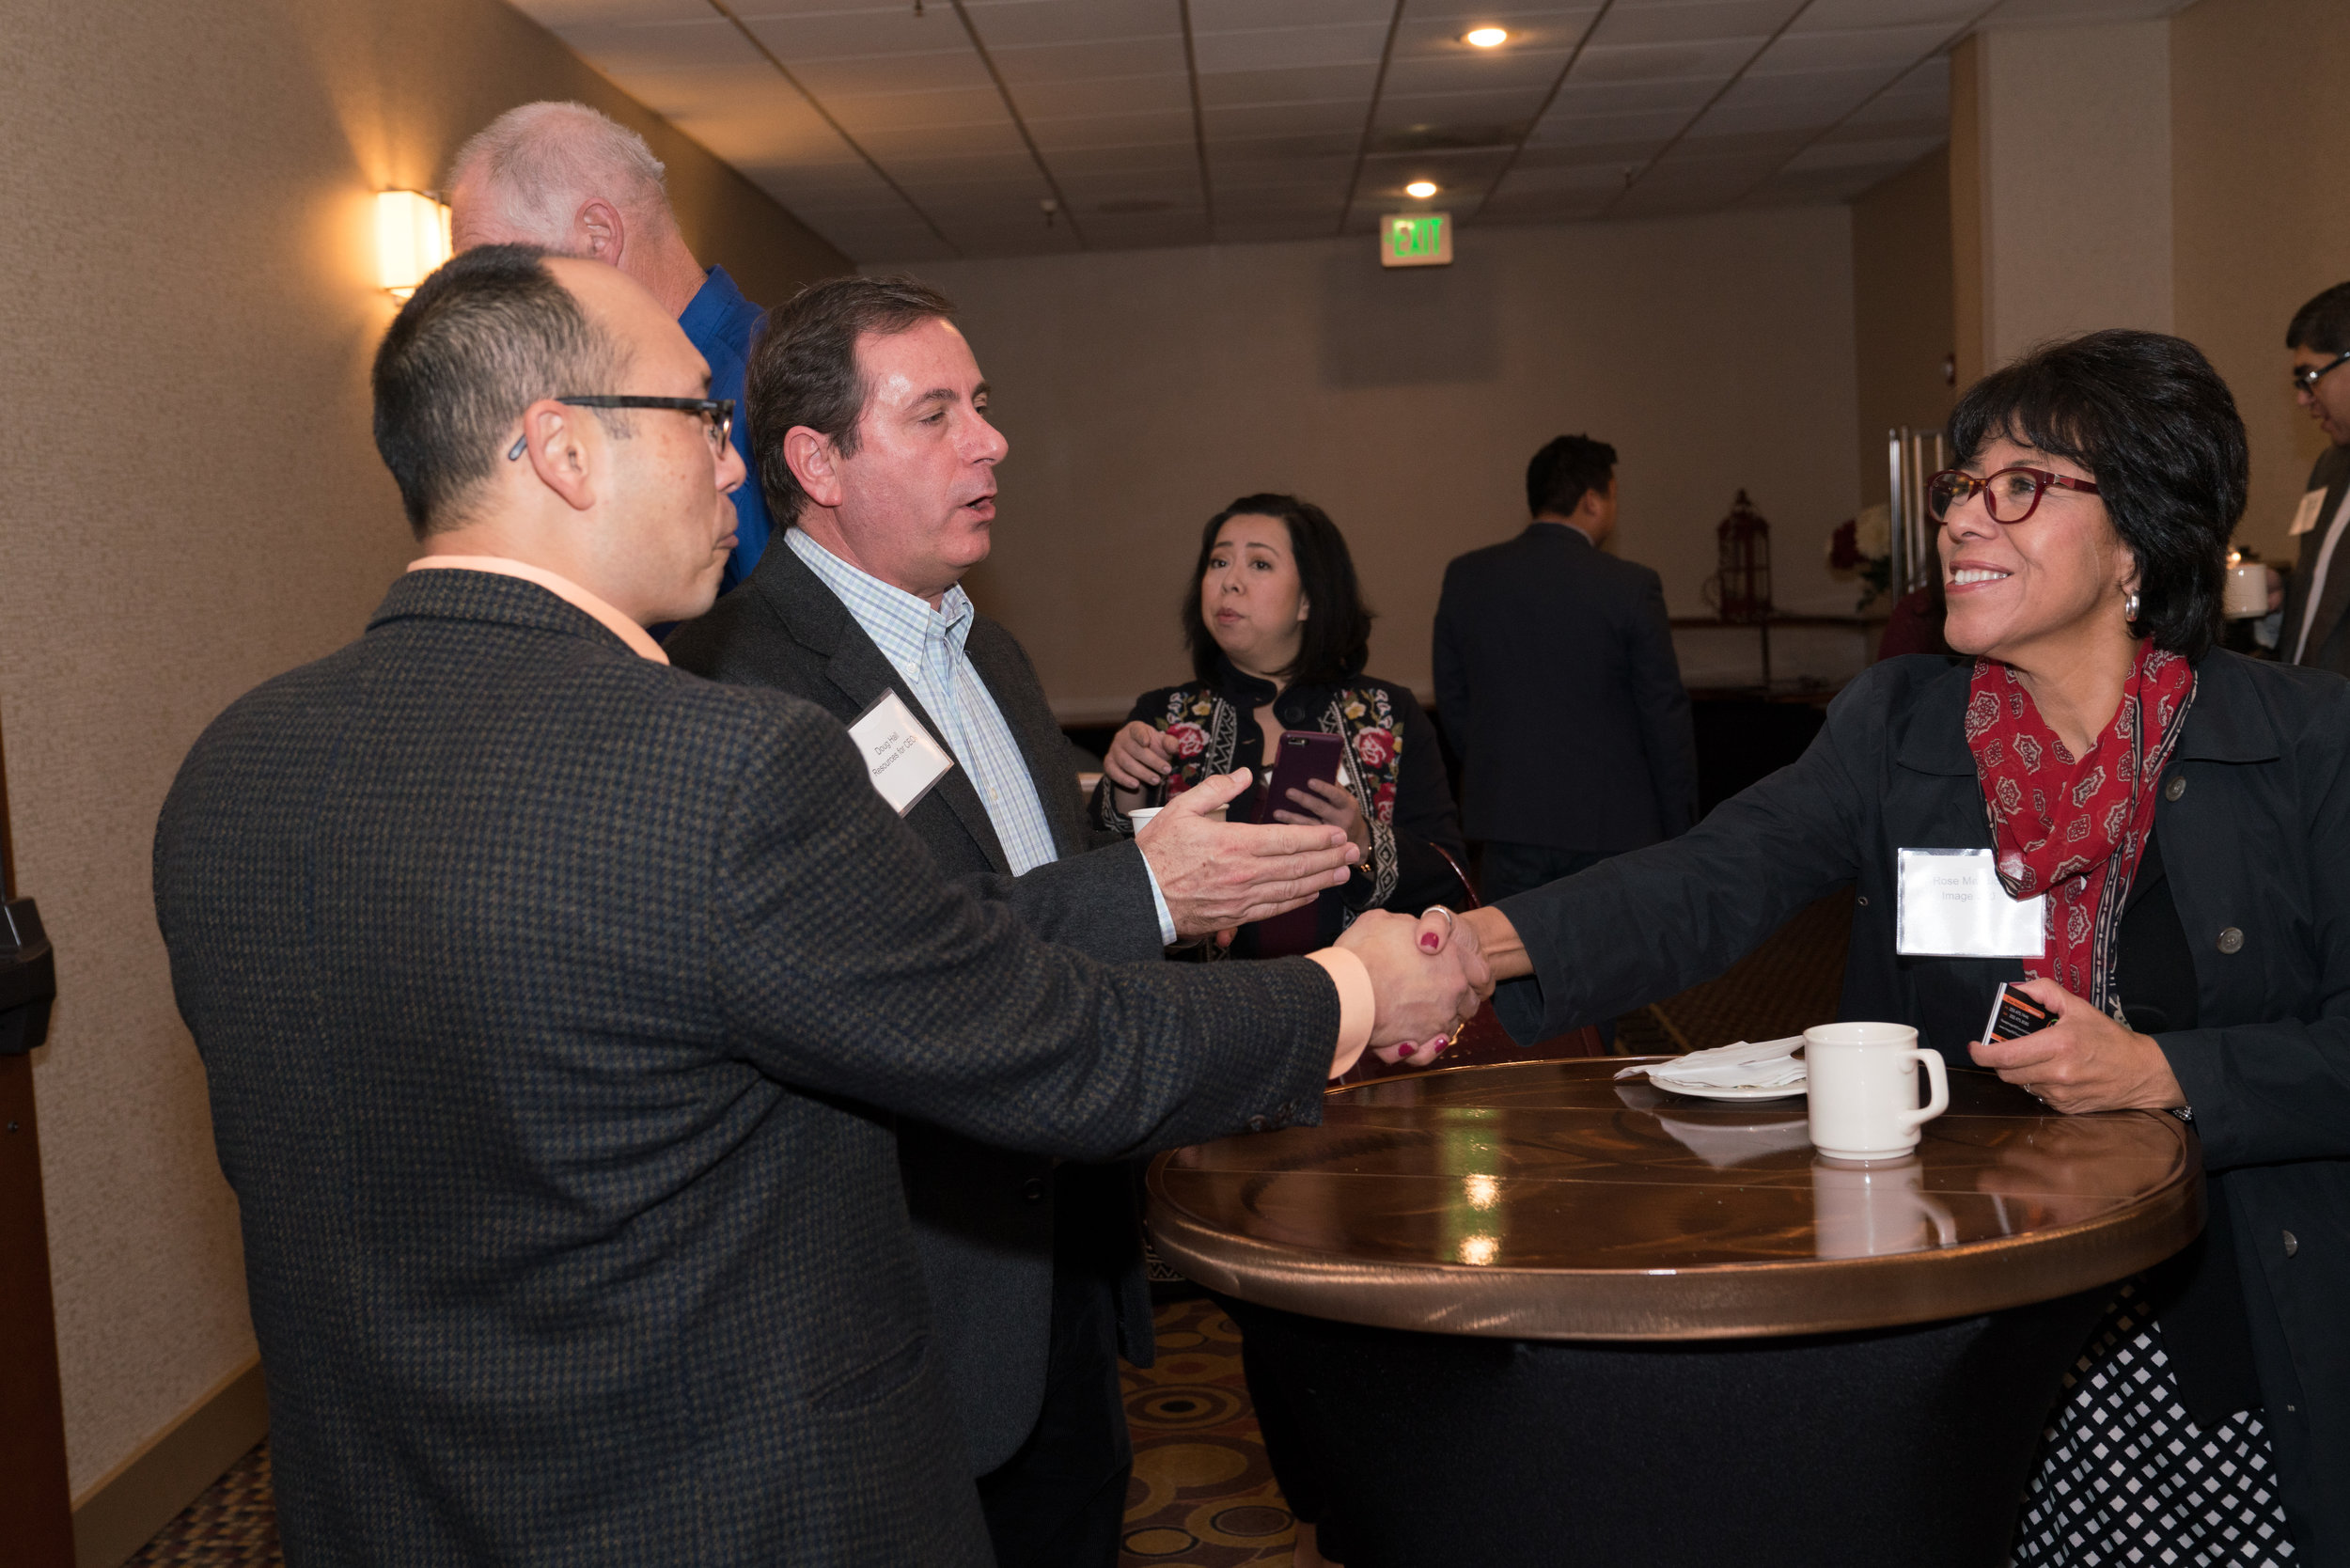 Paul Perez, Accelerated Breakthrough Training; Doug Hall, Resources for CEOs; and Rose Mednick, Image 360